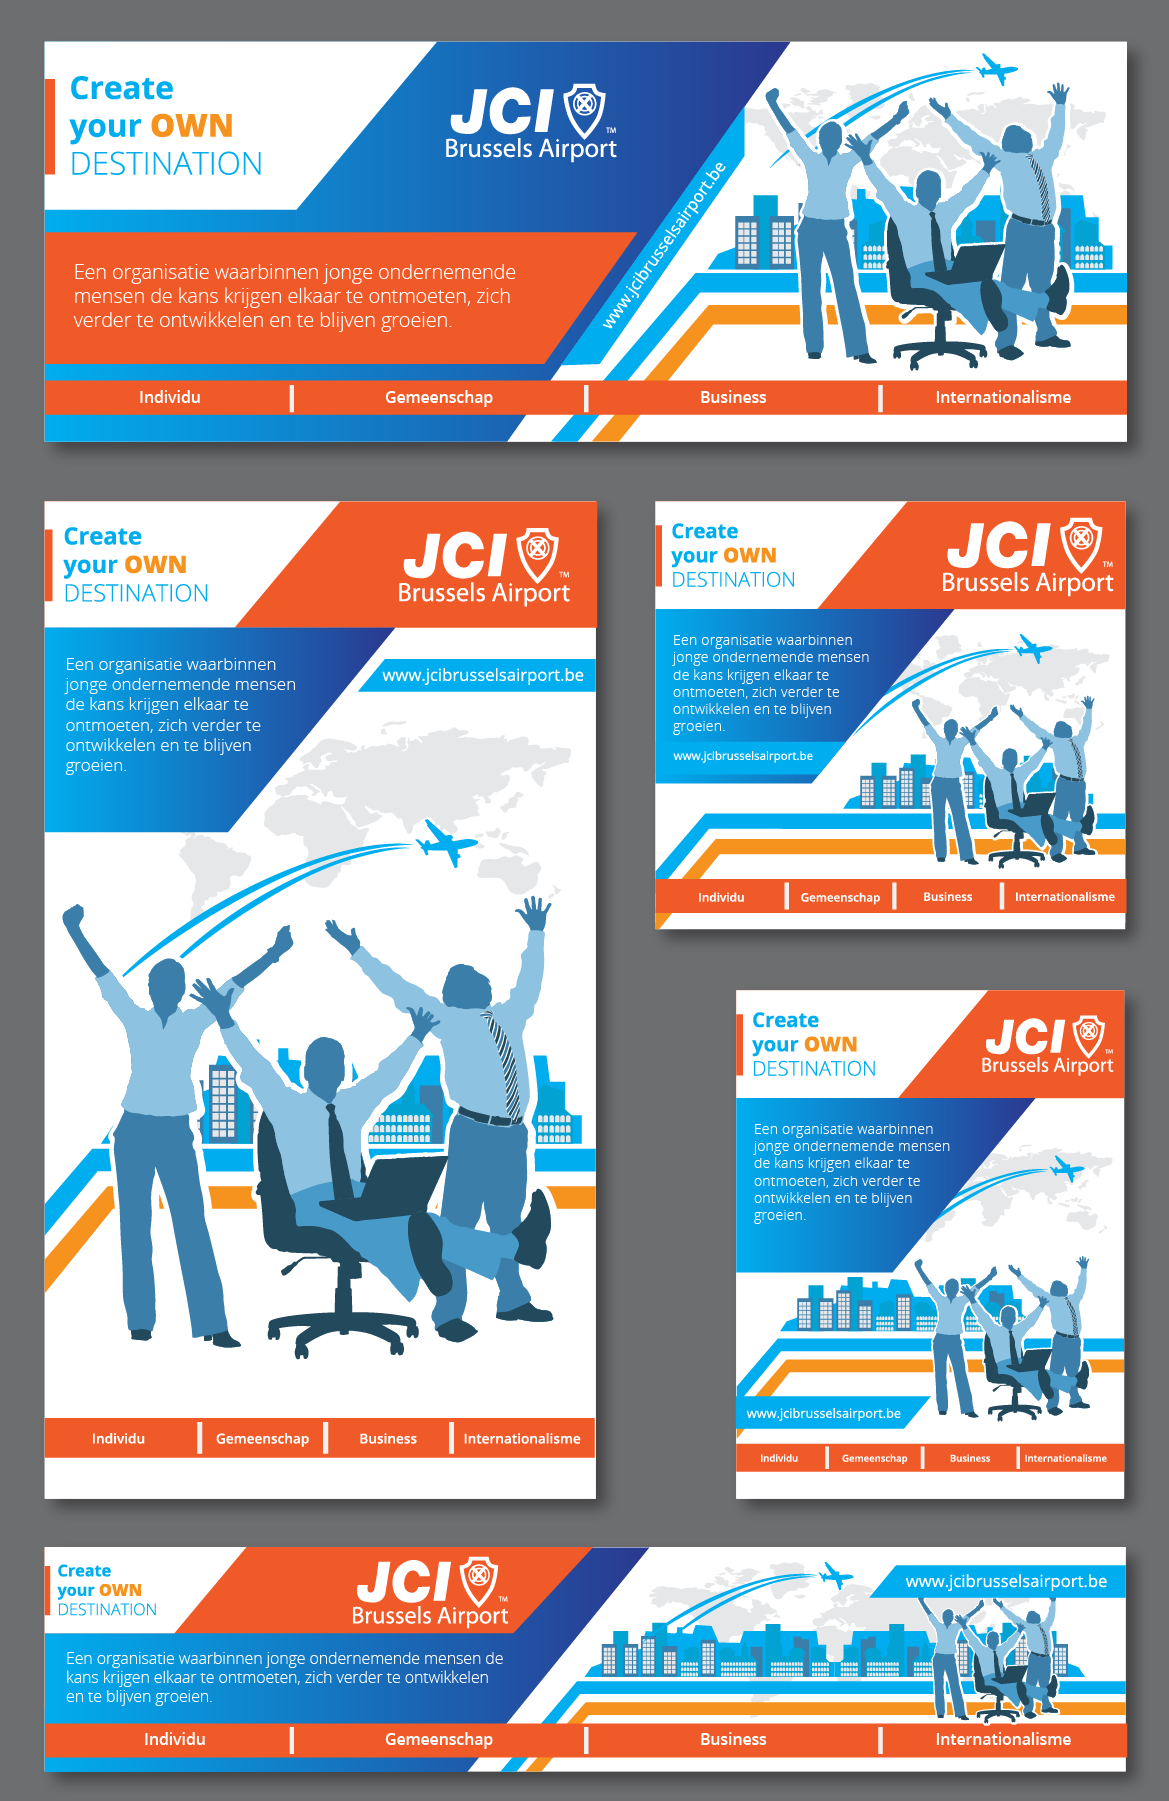 Create the next illustration or graphics for JCI Brussels Airport